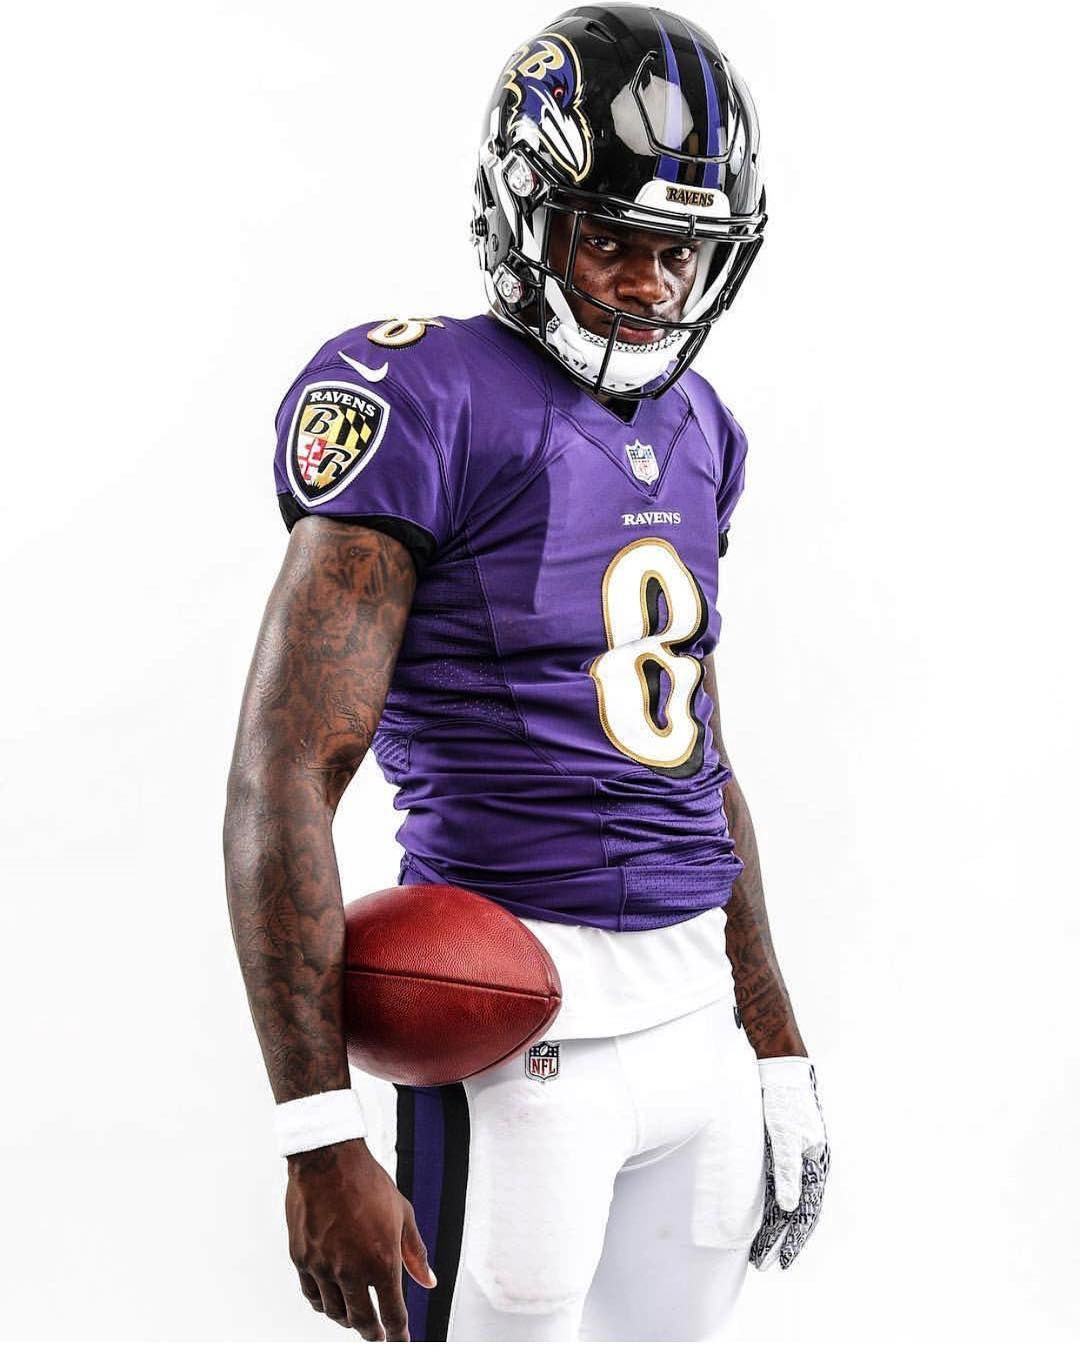 Lamar Jackson On Instagram Run Up On Me That S Risky Run Up On Me Don T Tempt Me In 2020 Lamar Jackson Ravens Football Baltimore Ravens Football